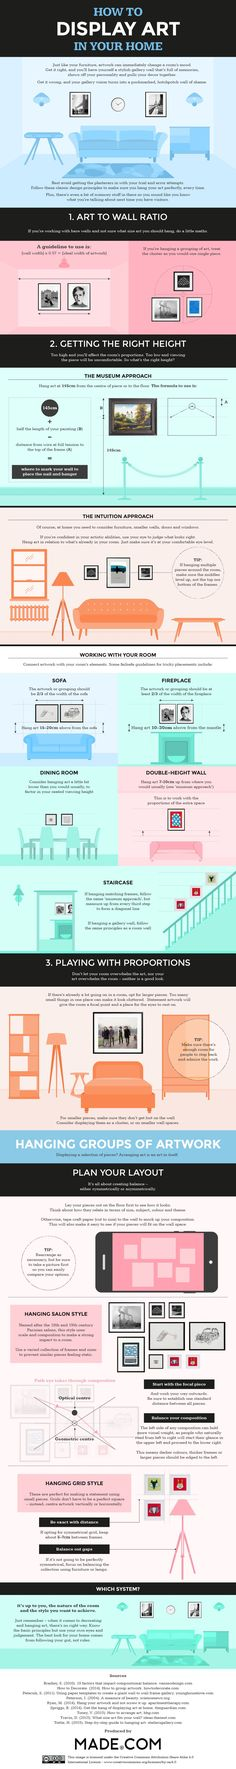 How to Display Art in Your Home - Tipsögraphic